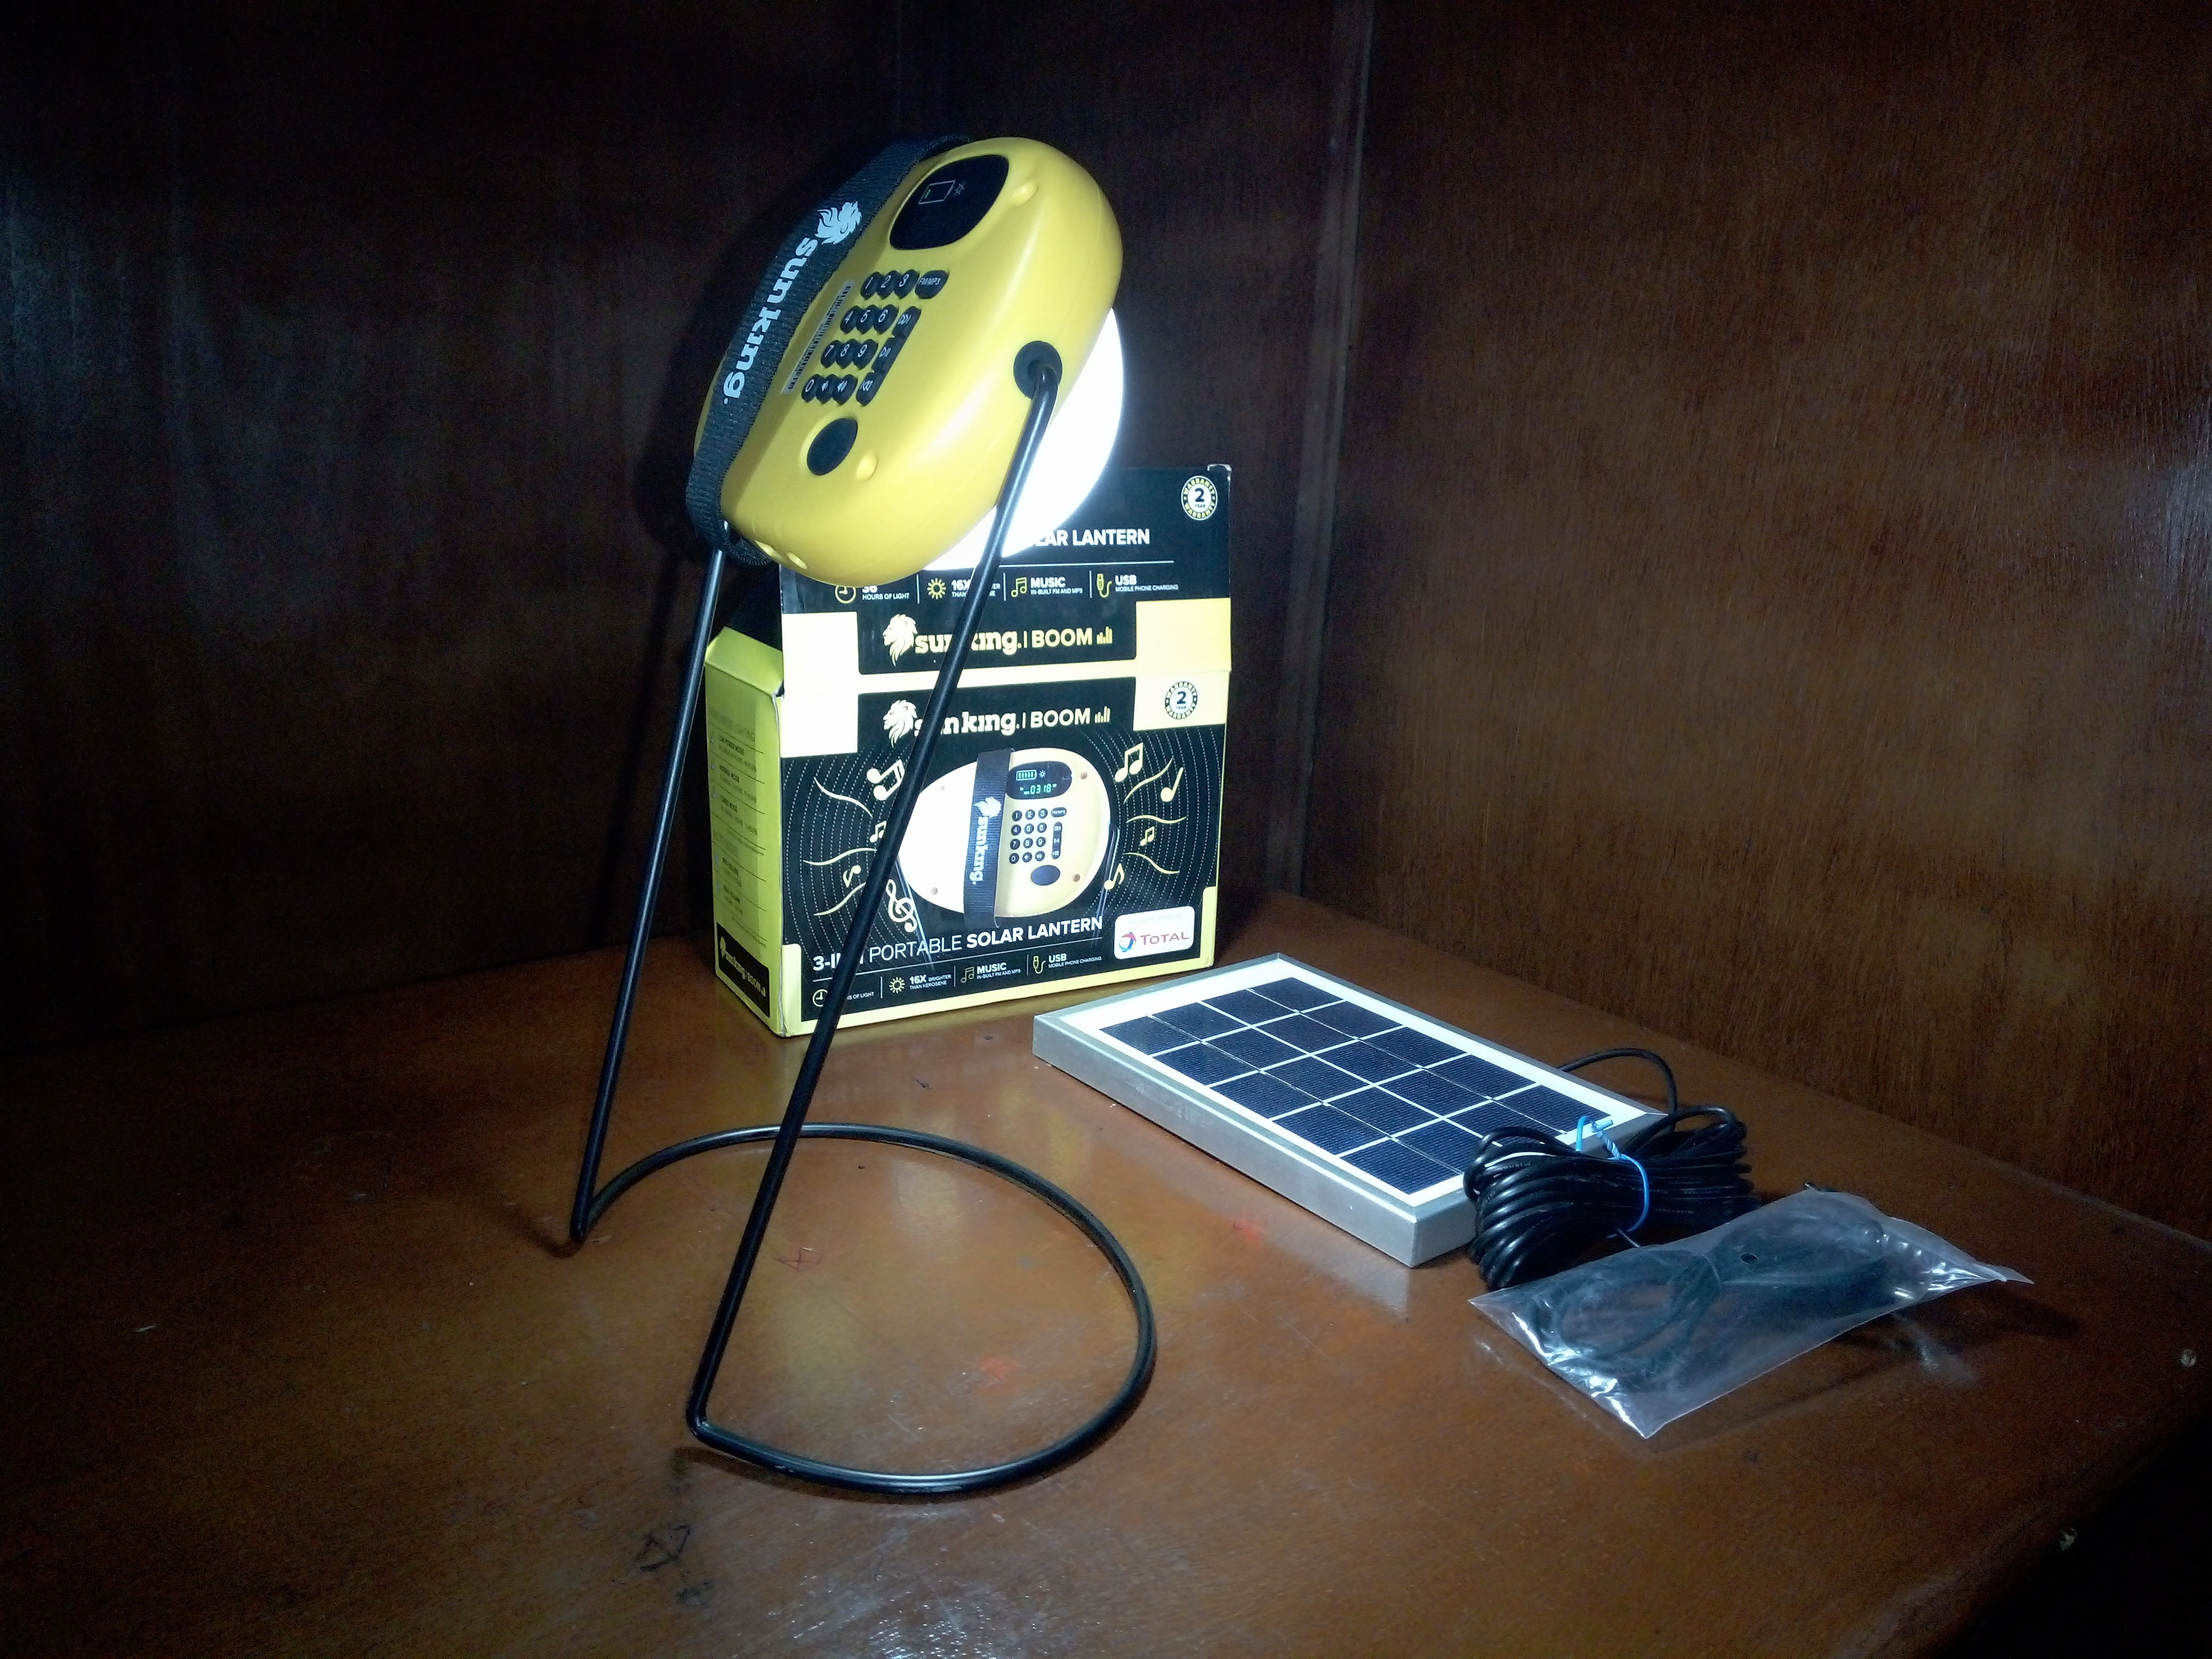 Portable Solar Lantern (In-Built Radio And Phone Charger)